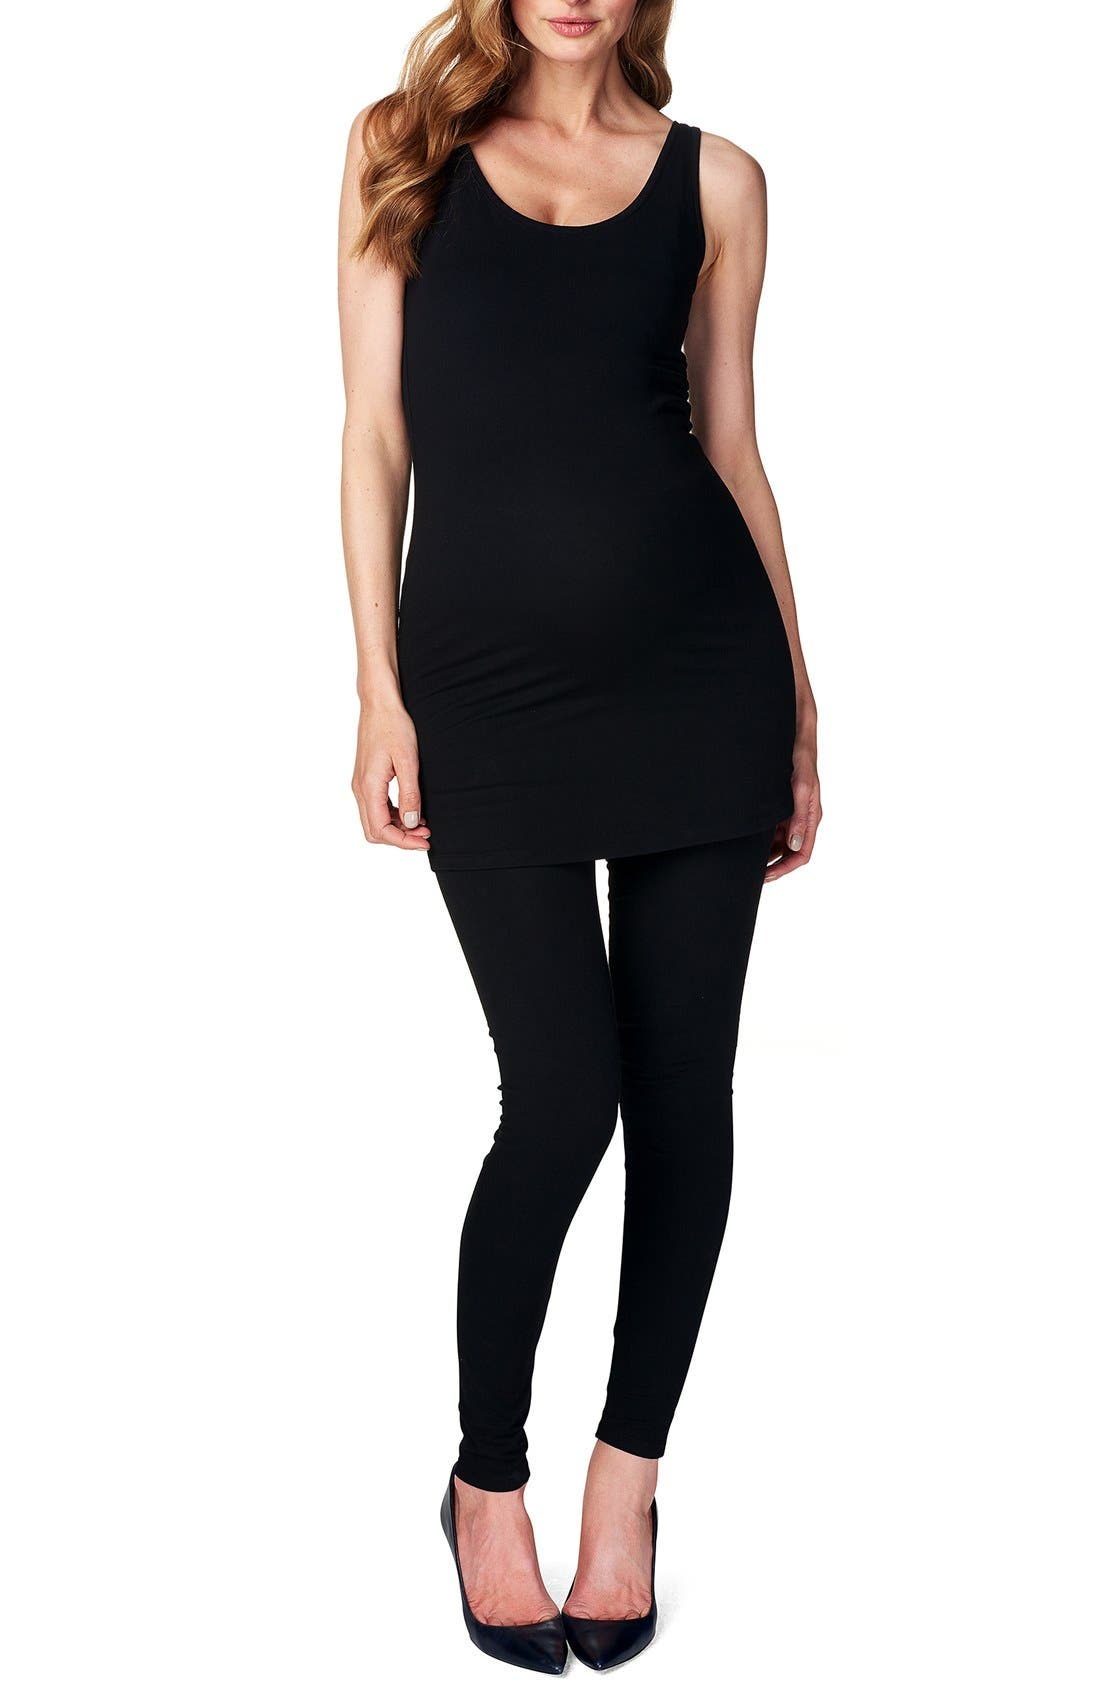 Main Image - Noppies 'Amsterdam' Scoop Neck Long Maternity Top